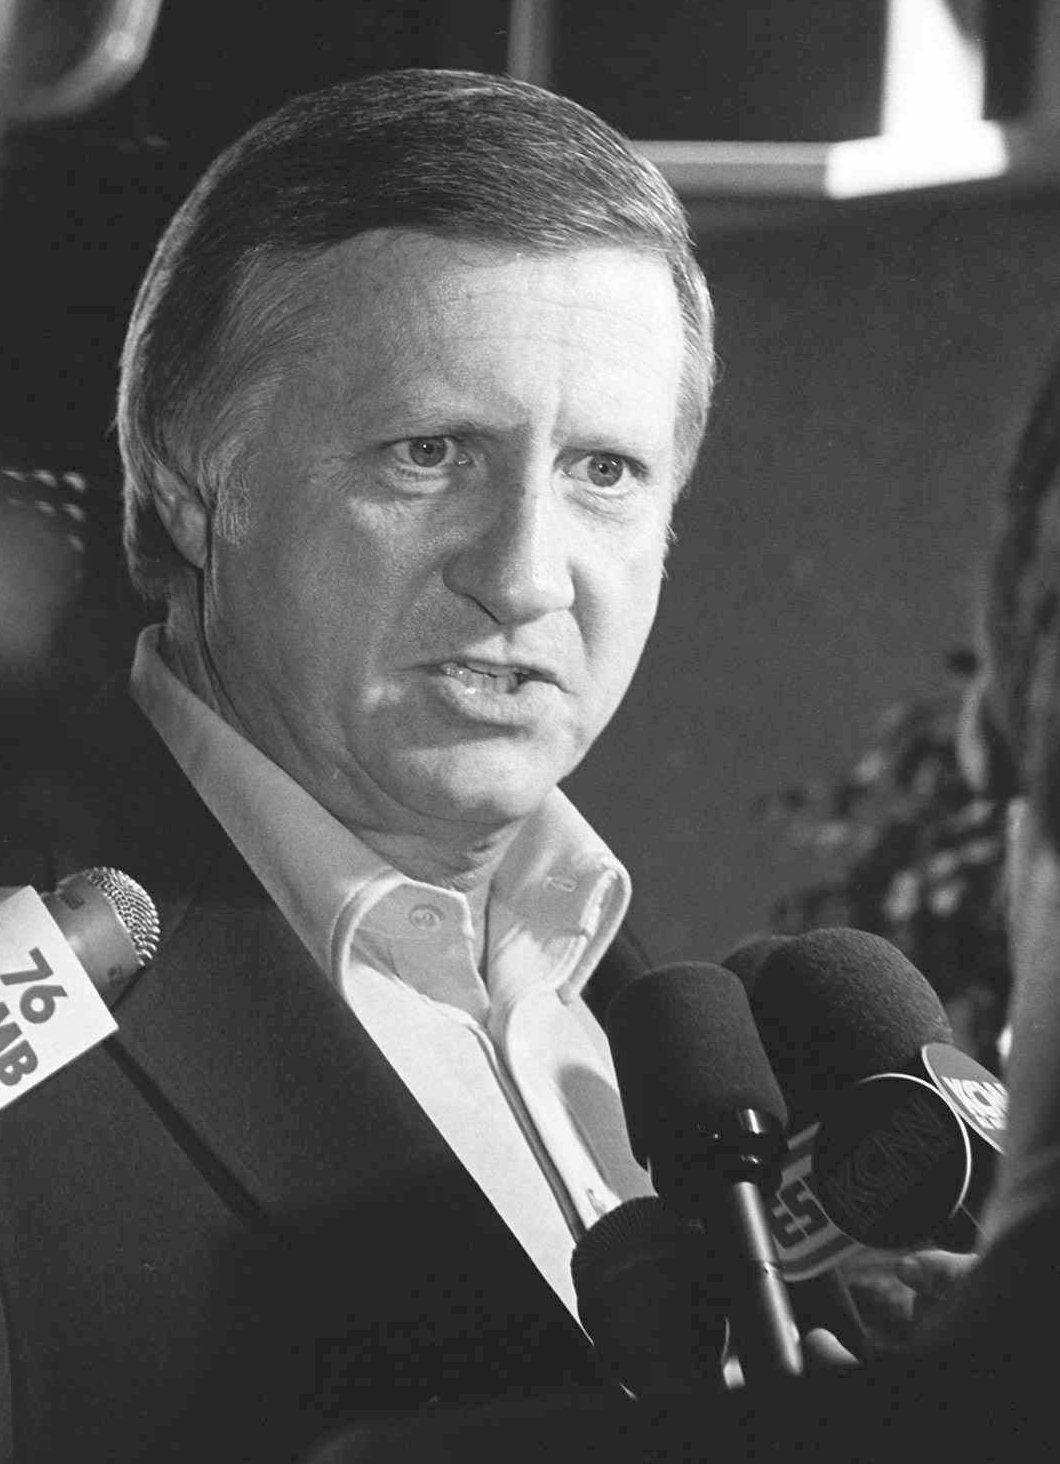 In an April 25, 1974 photo, George Steinbrenner talks with members of the press at Yankee Stadium in New York. George Steinbrenner died Tuesday morning.